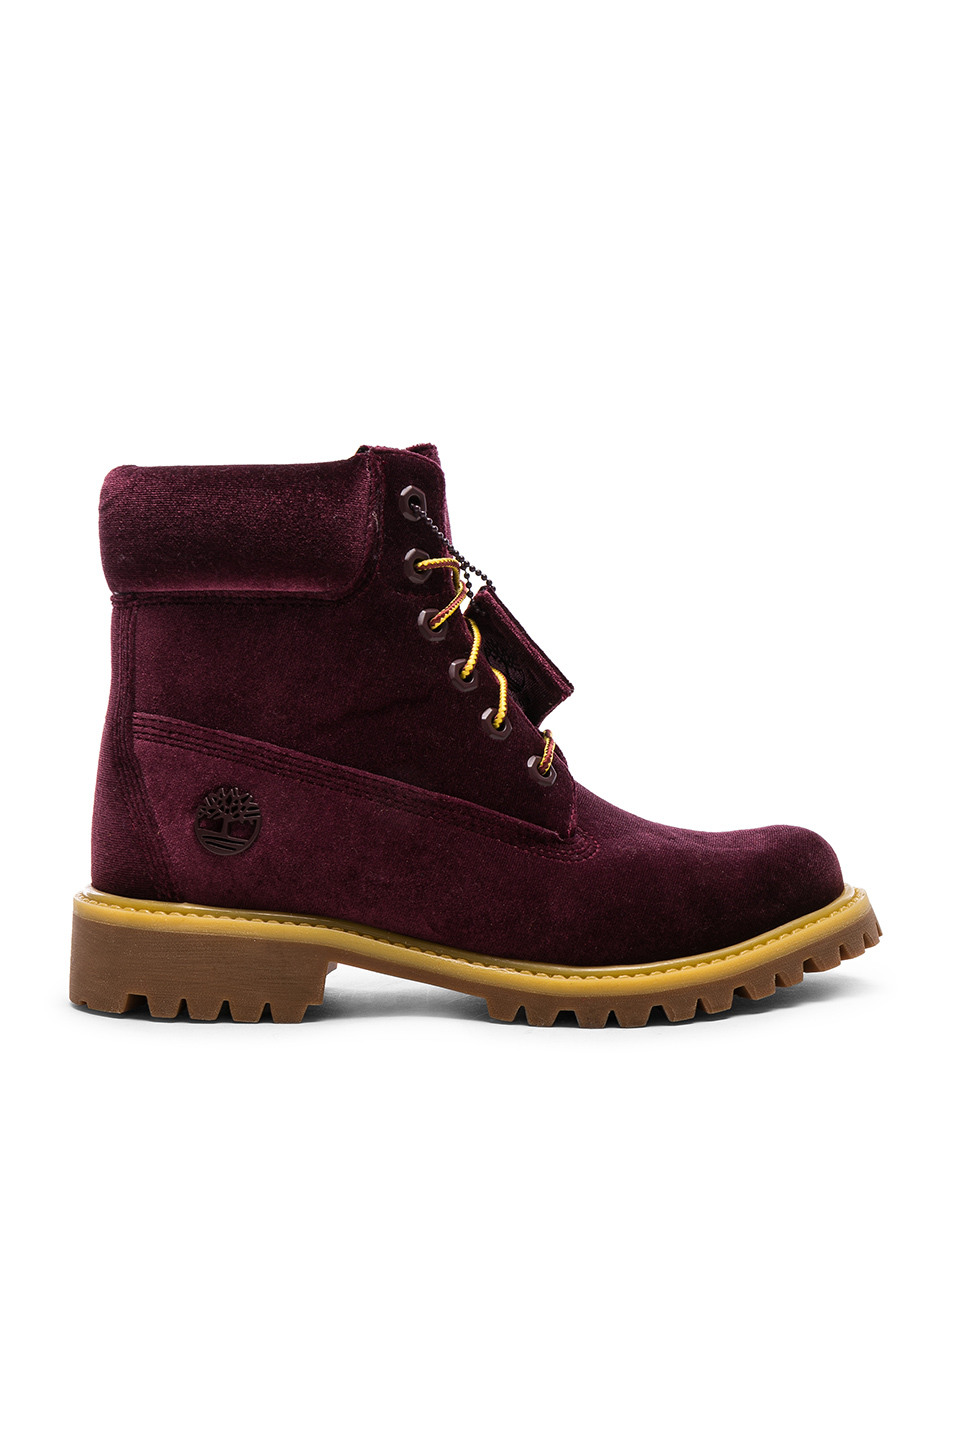 82aaeb7a784 Timberland Velvet Hiking Boots, OFF-WHITE